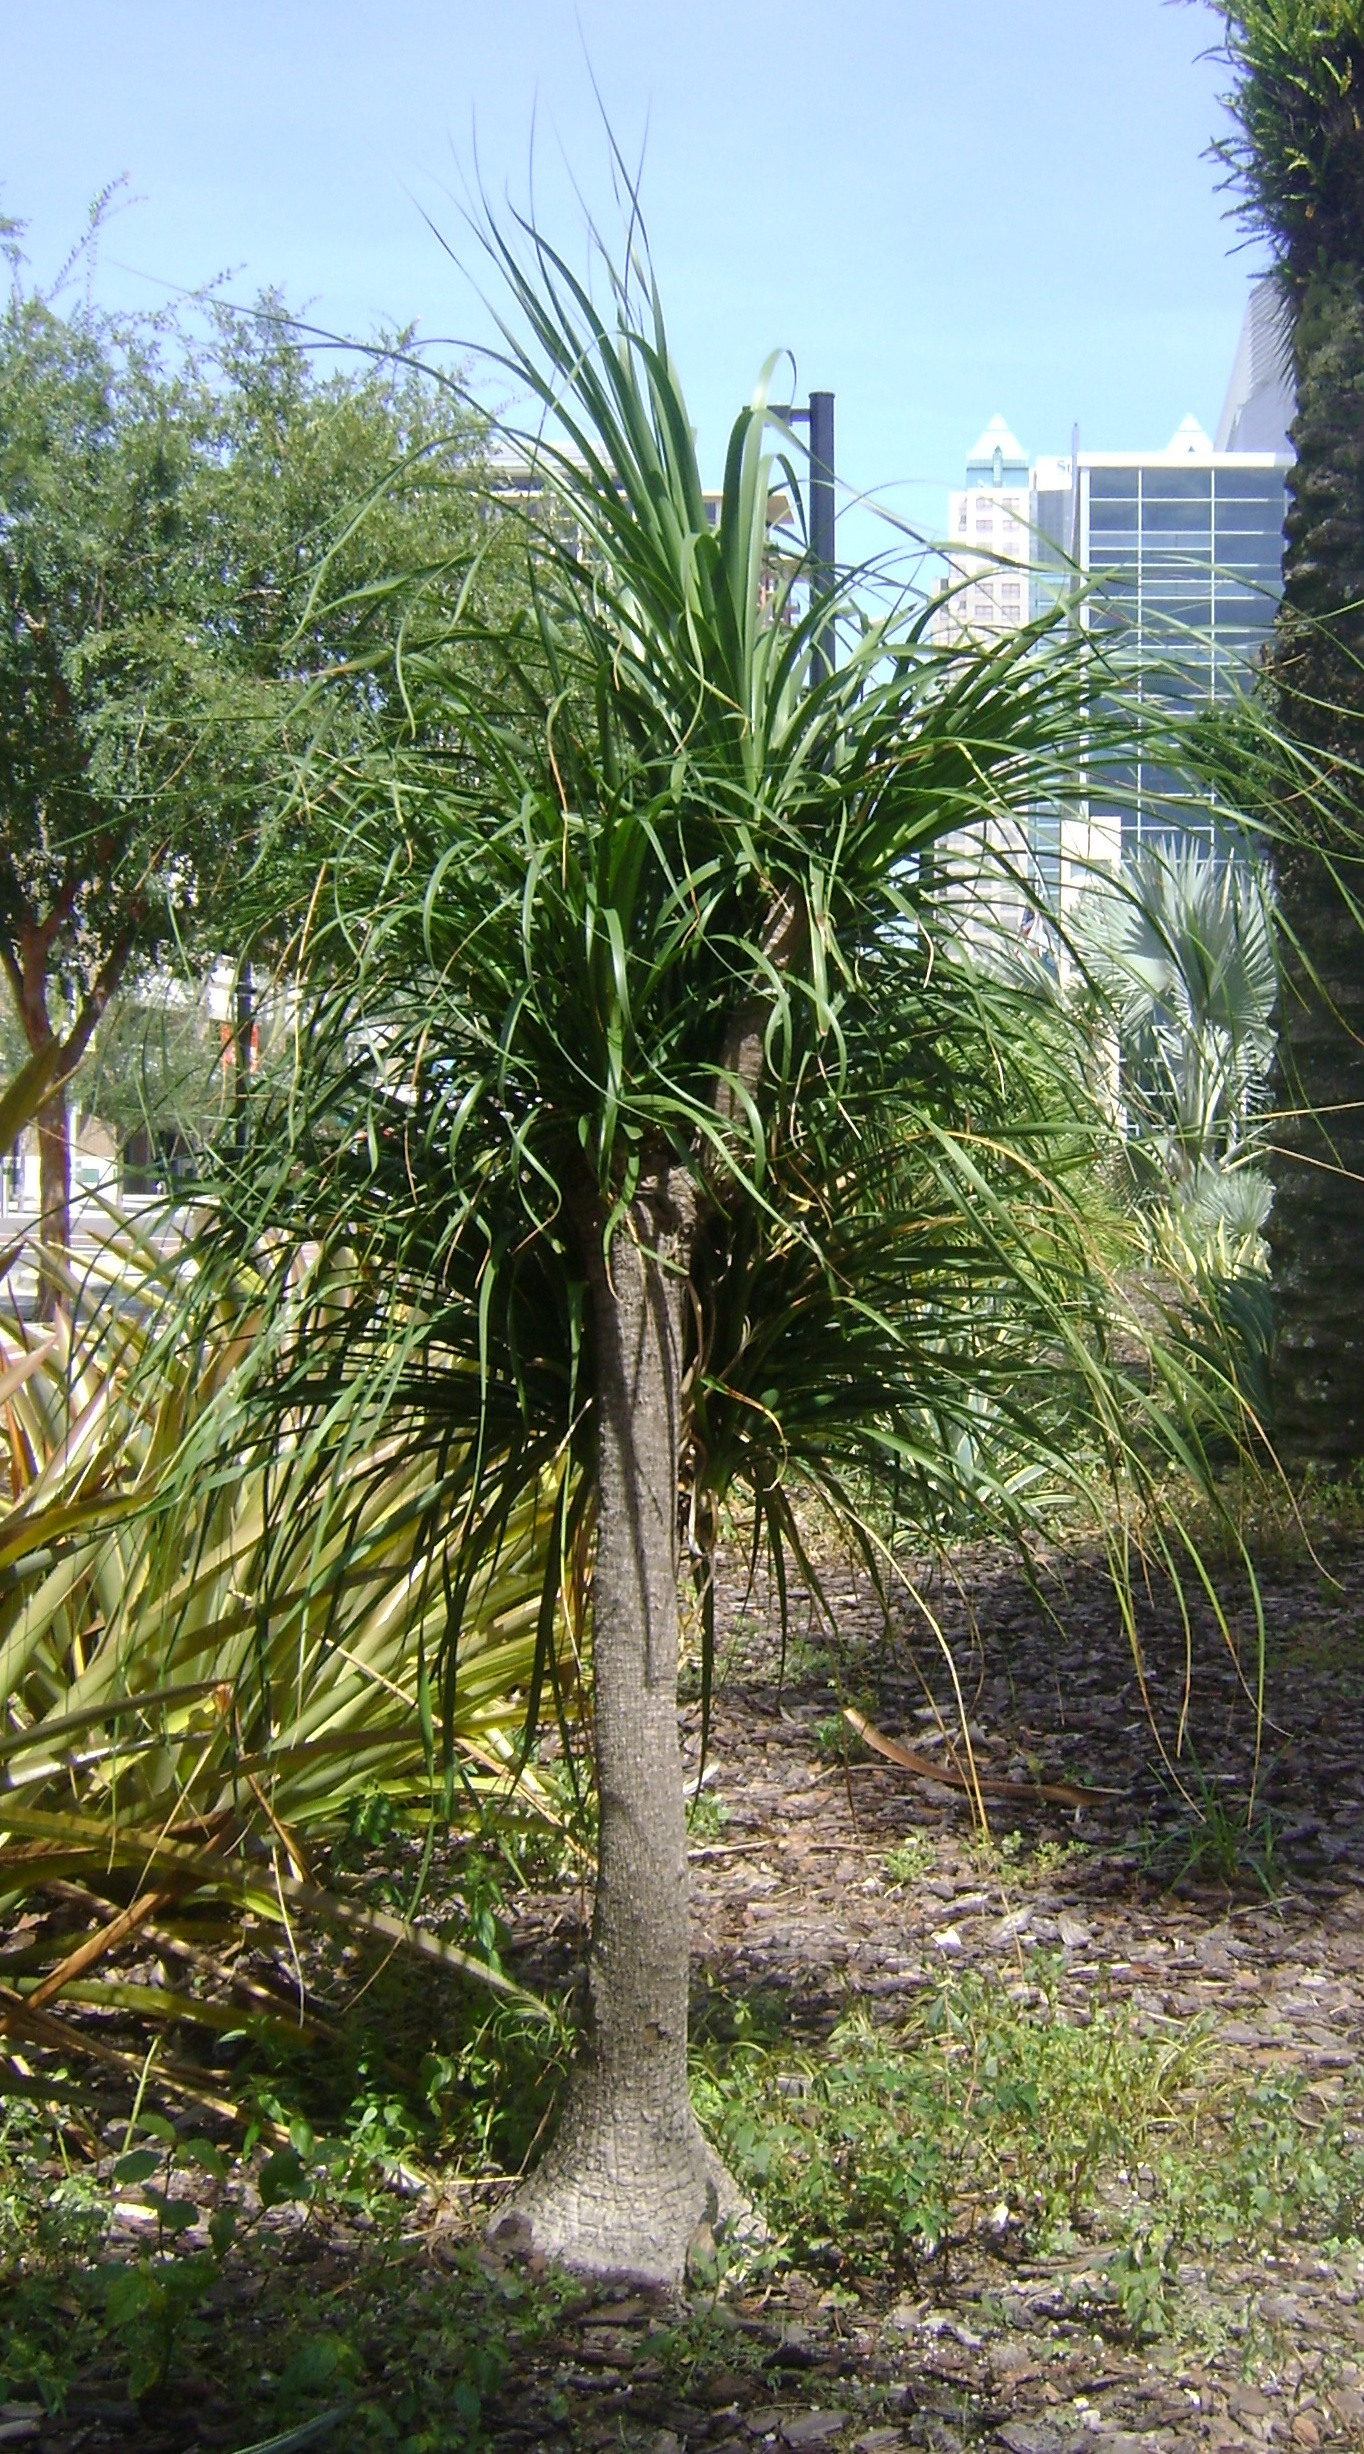 Buy Ponytail Palm Tree, For Sale in Orlando, Sanford, Kissimmee